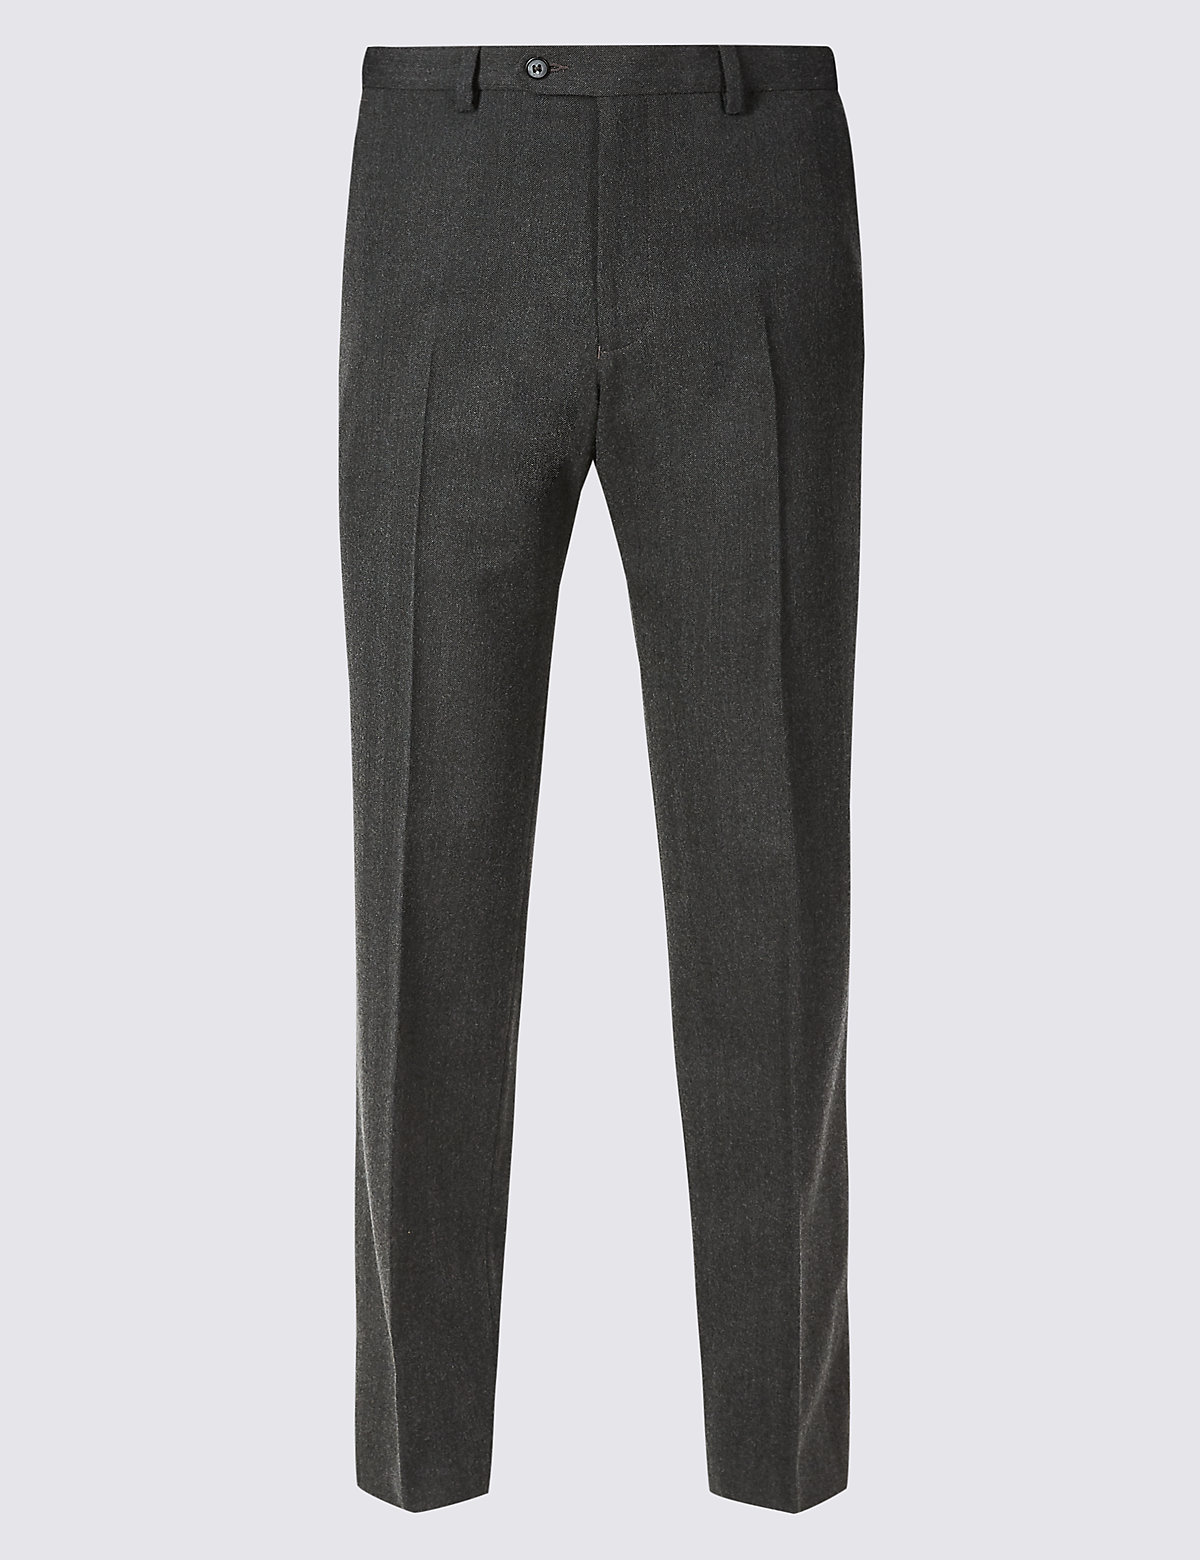 Marks & Spencer Charcoal Tailored Fit Wool Blend Flat Front Trousers